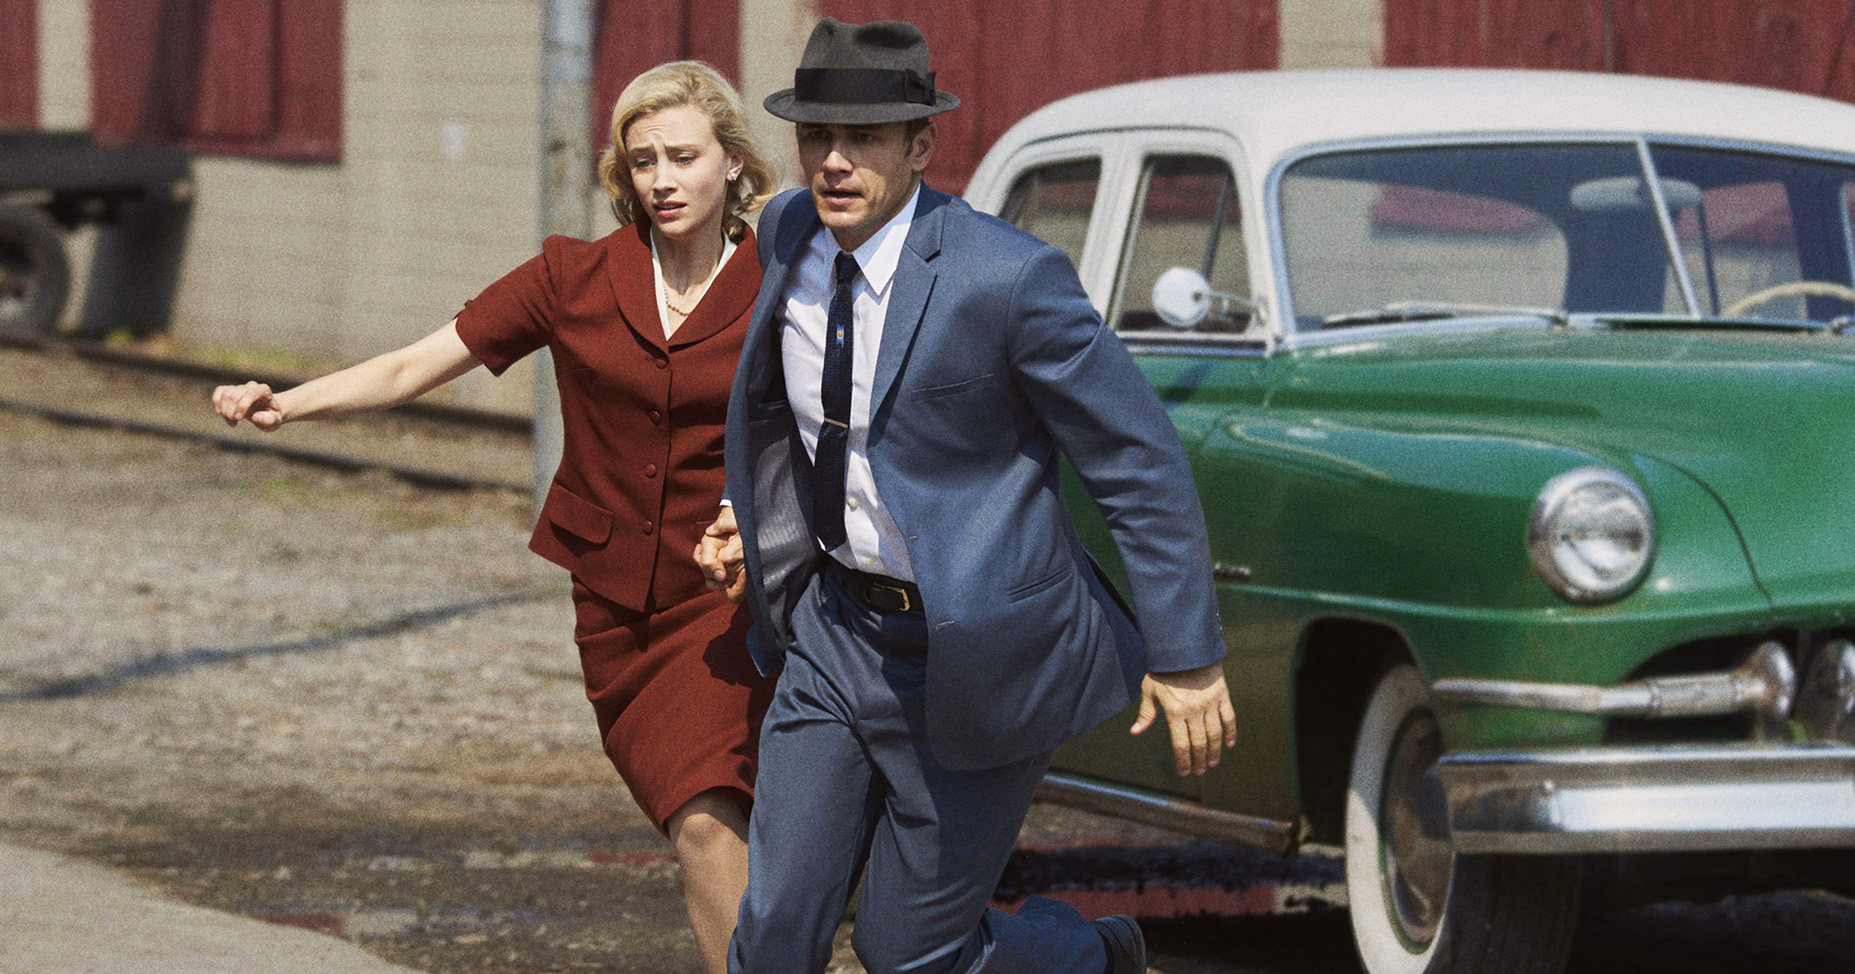 Sarah Gadon, as Sadie Dunhill, and James Franco, as Jake Epping, in 11.22.63.